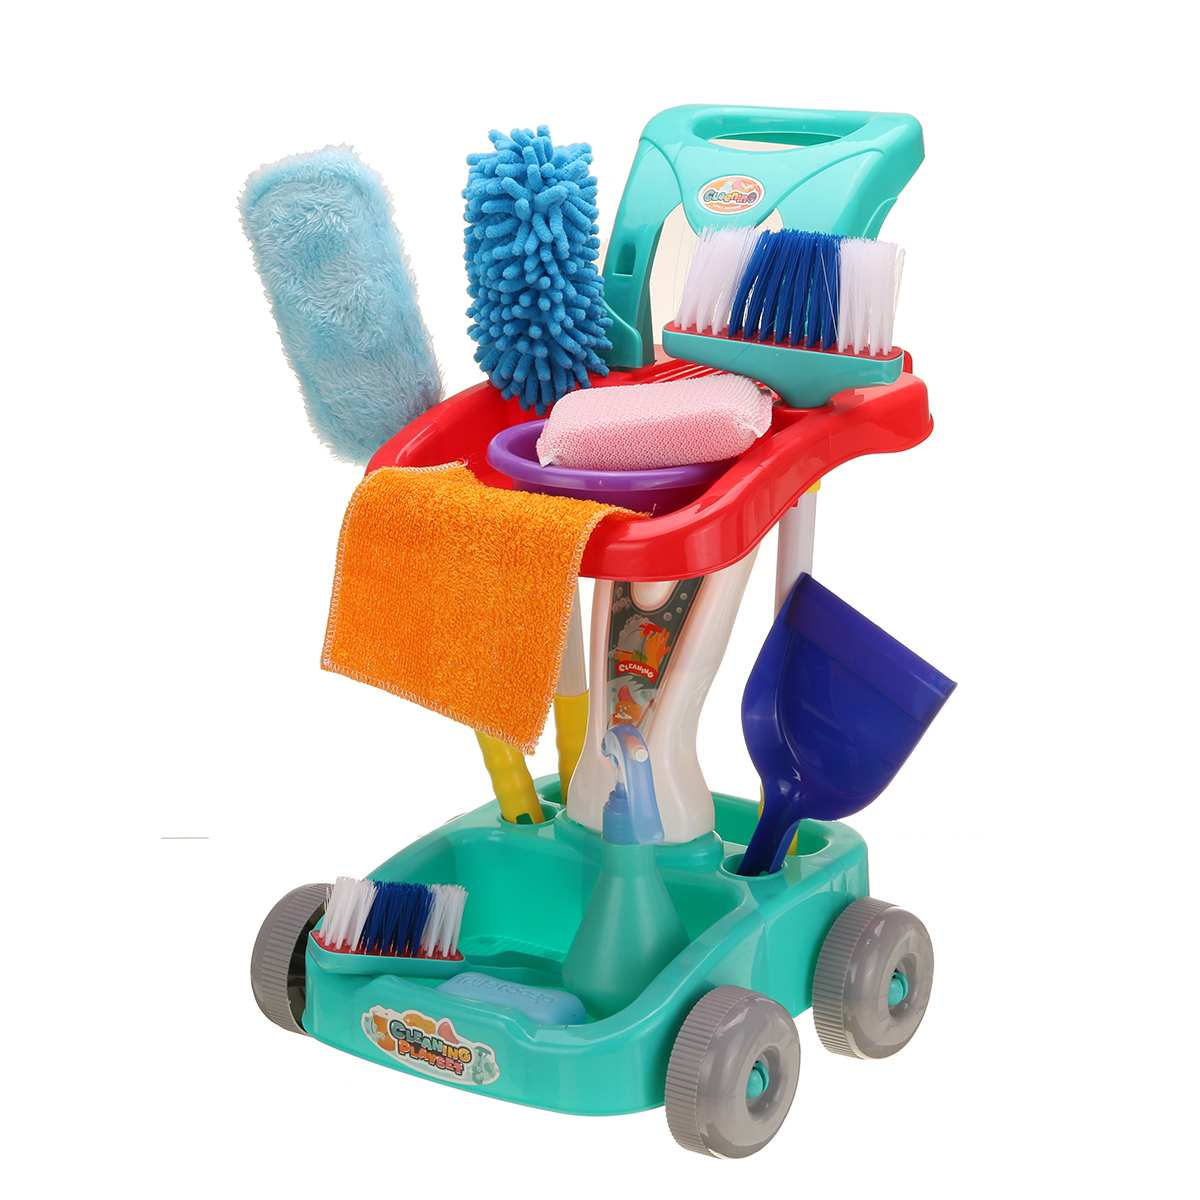 22 PCS/Set Simulation Mini Housekeeping Toys Home Cleaning Cart Set Educational Kids Play Learning Development For Boys Girls